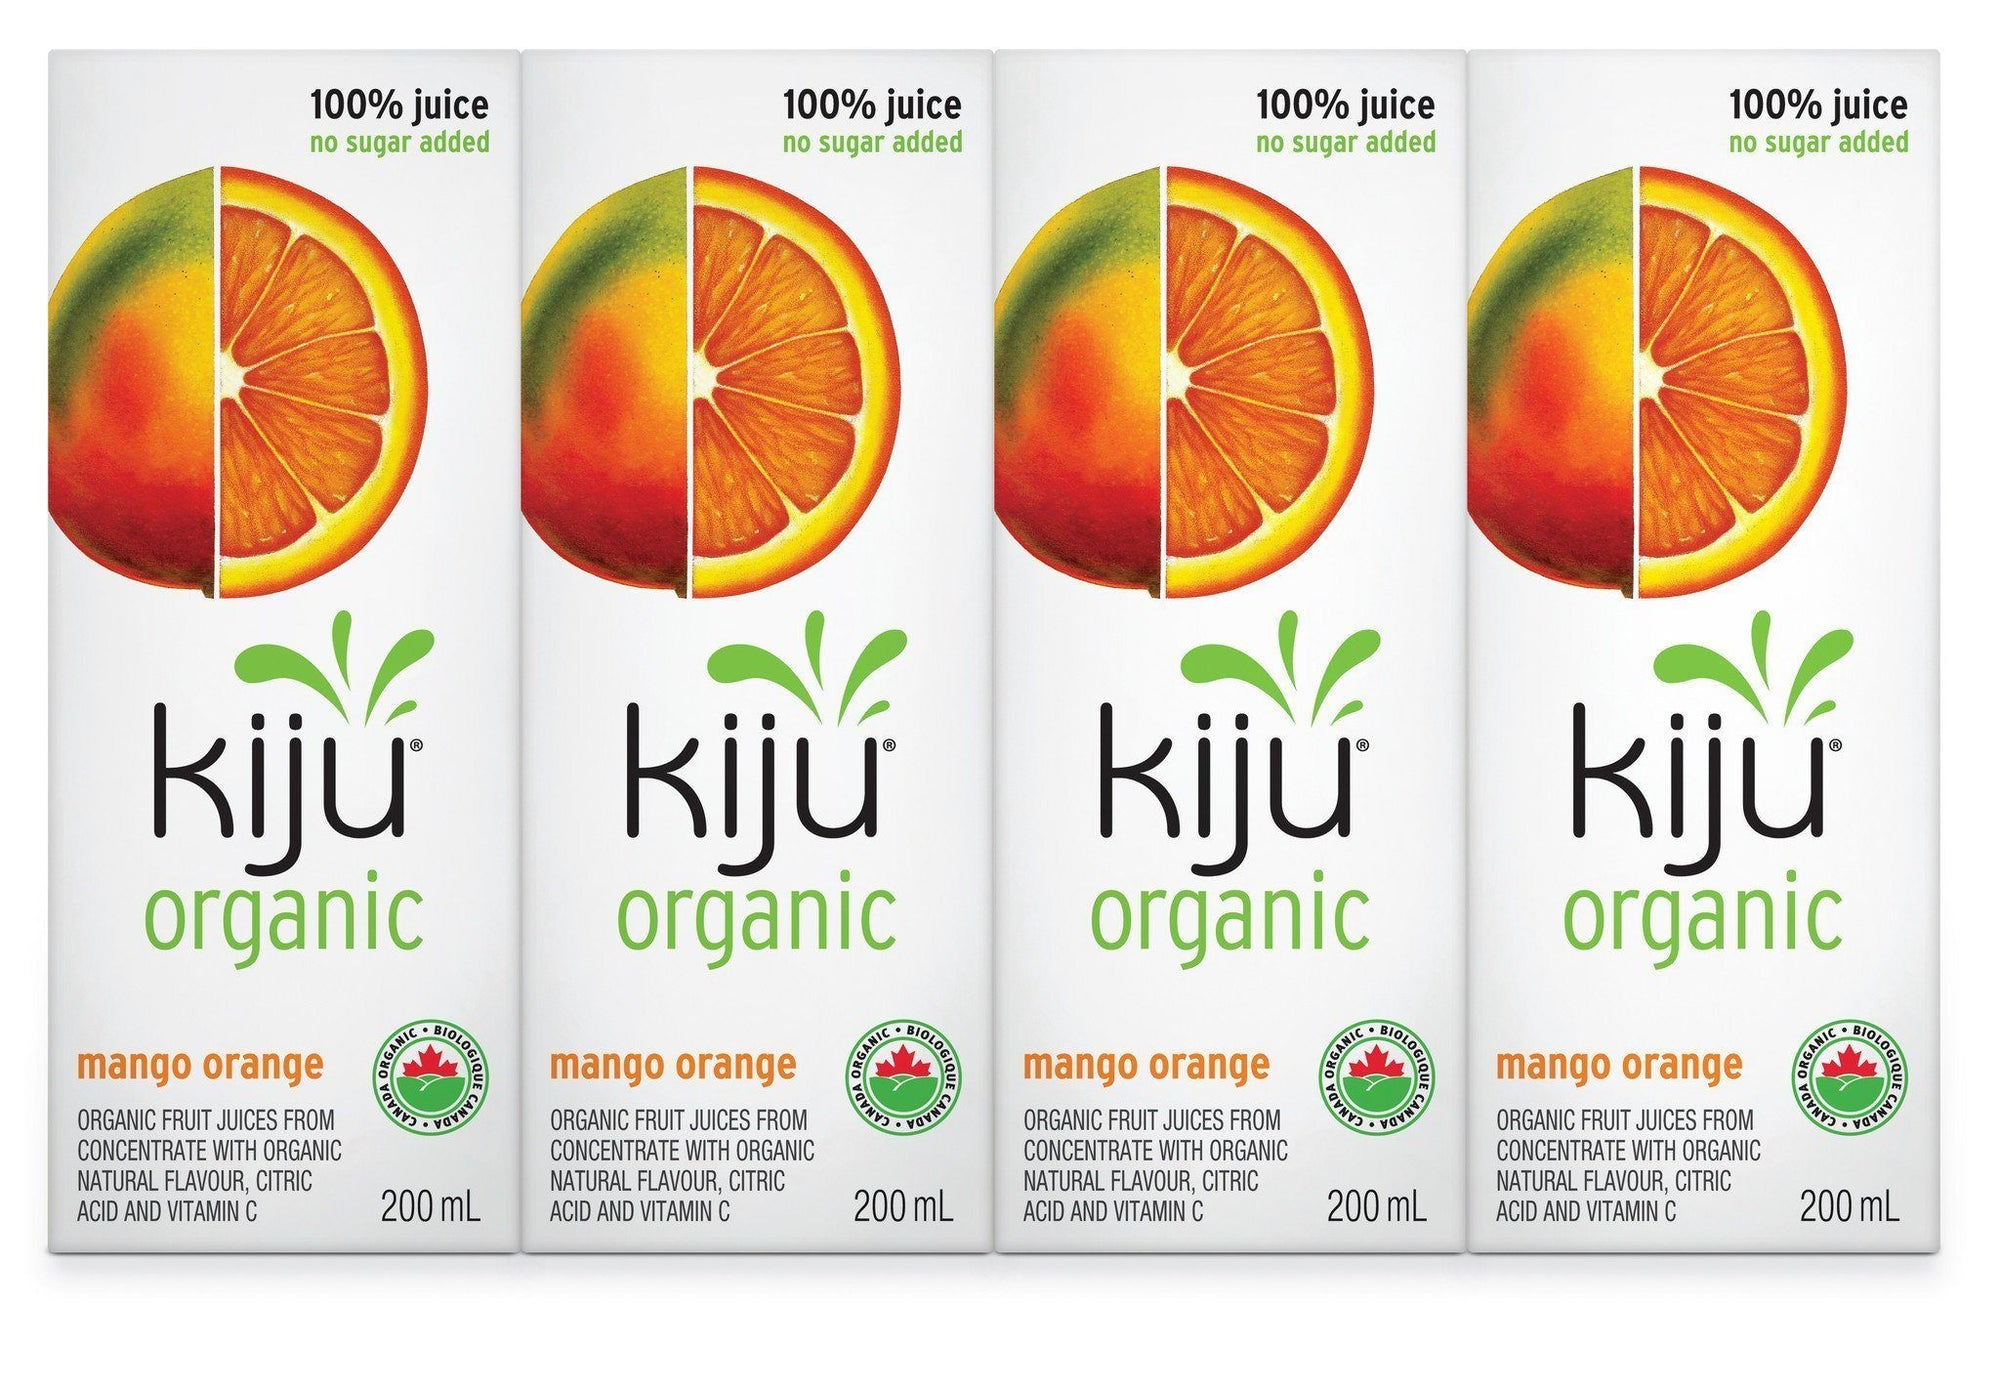 Food & Drink - Kiju - Organic Mango Orange Juice, 200ml